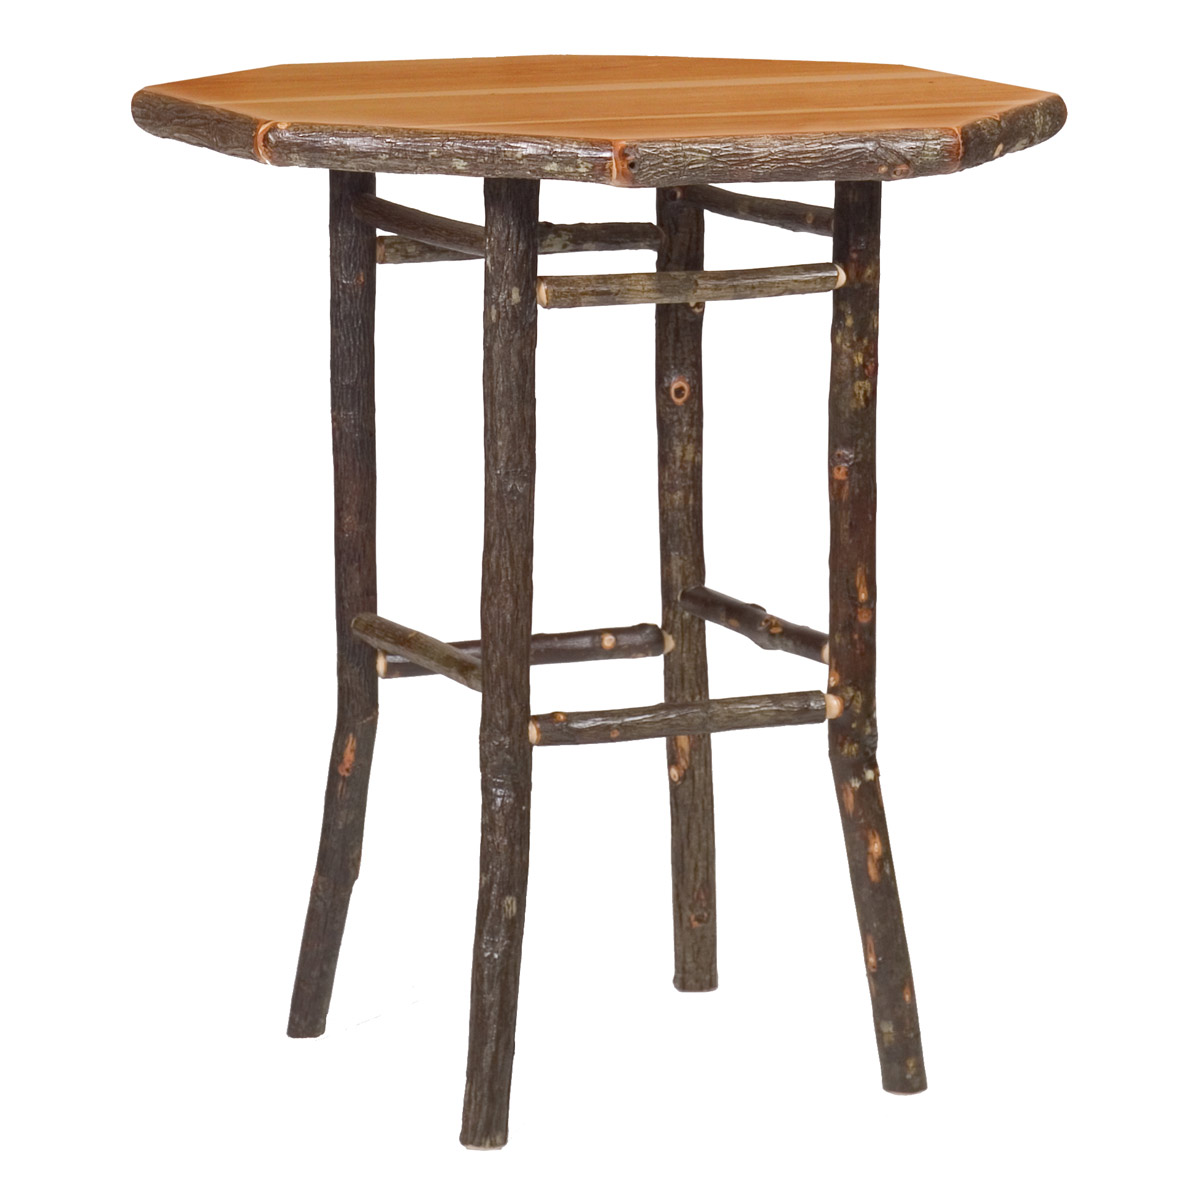 Black Forest Decor Hickory round pub table - 40 inch